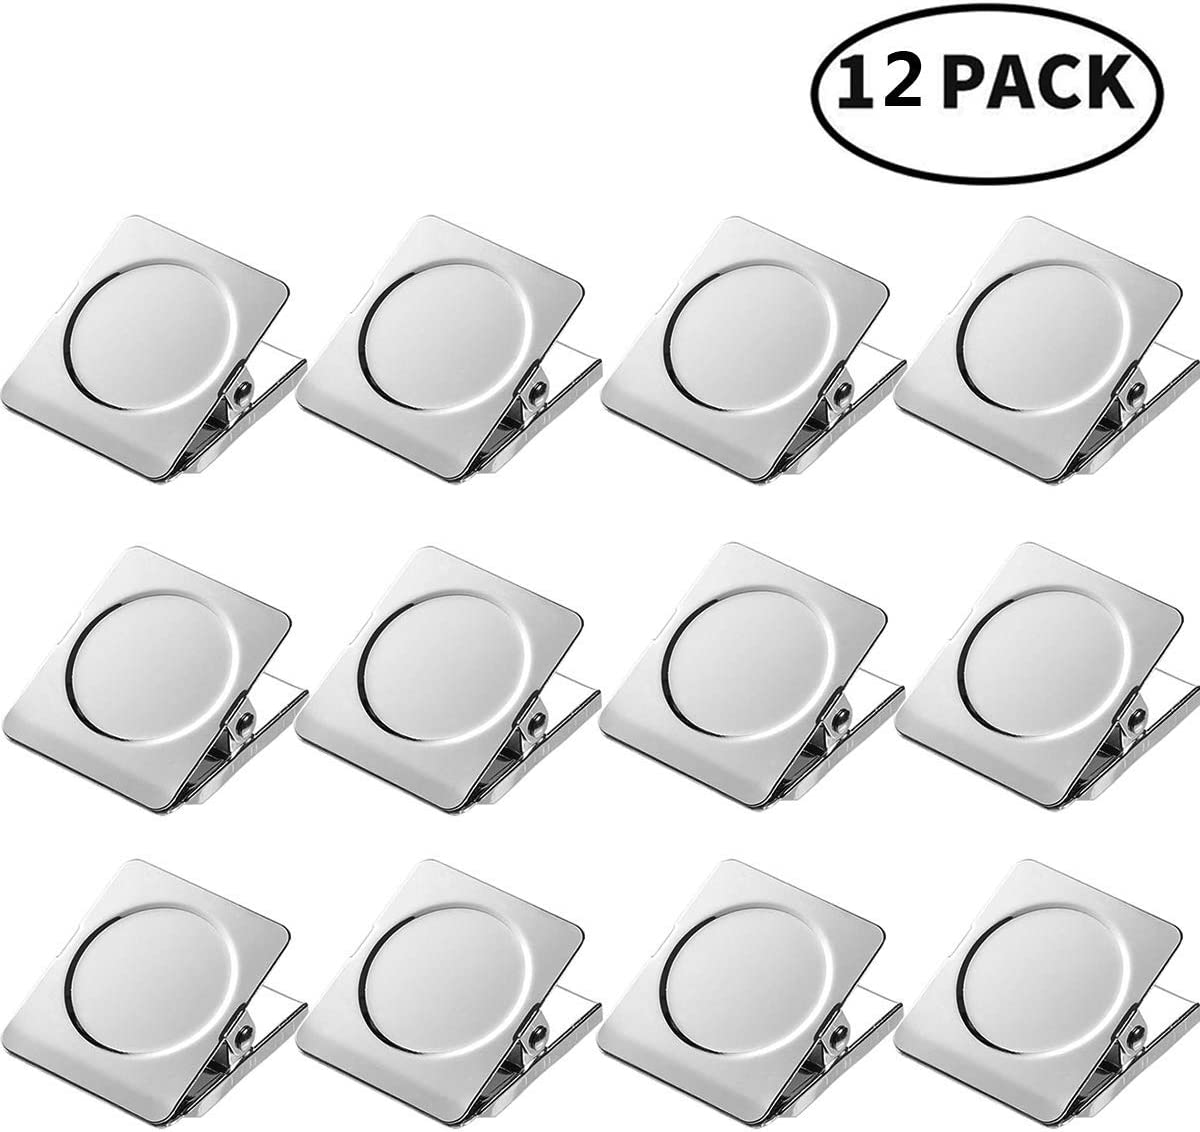 Strong Magnet Clips - 12 Heavy Duty Metal Magnetic Clips for Refrigerator Width 1.5 inch, Magnetic Clips for Whiteboard, Picture, Office Magnets, Magnet Clipboard for White Boards